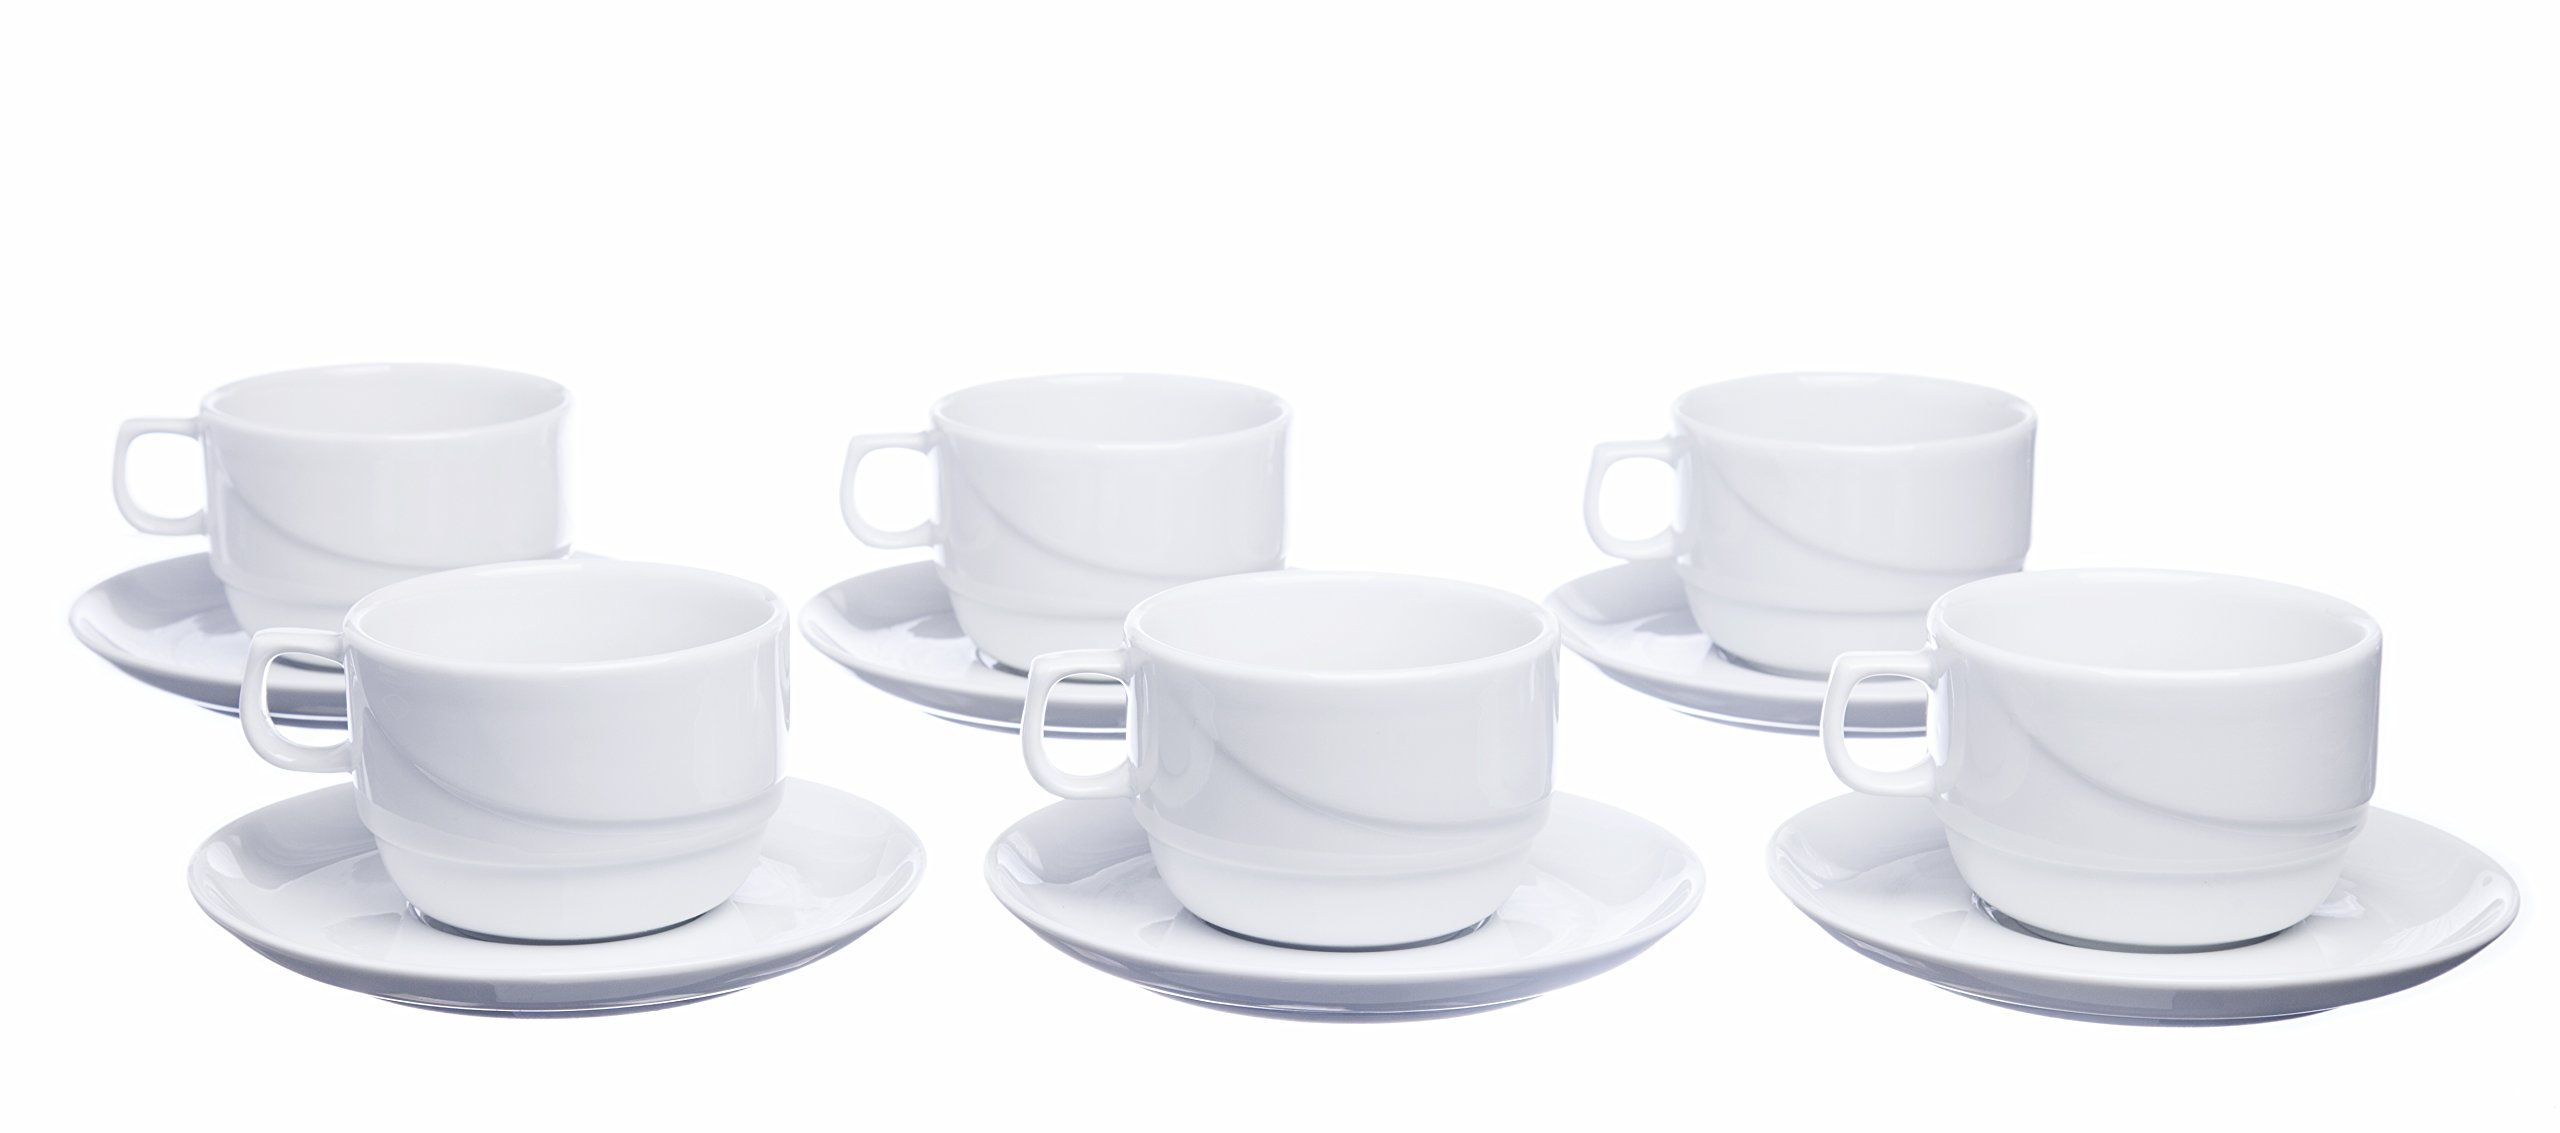 Smart And Cozy STACKABLE 12-Piece Tea/Coffee CUPS with Saucers, White Porcelain, Restaurant&Hotel Quality